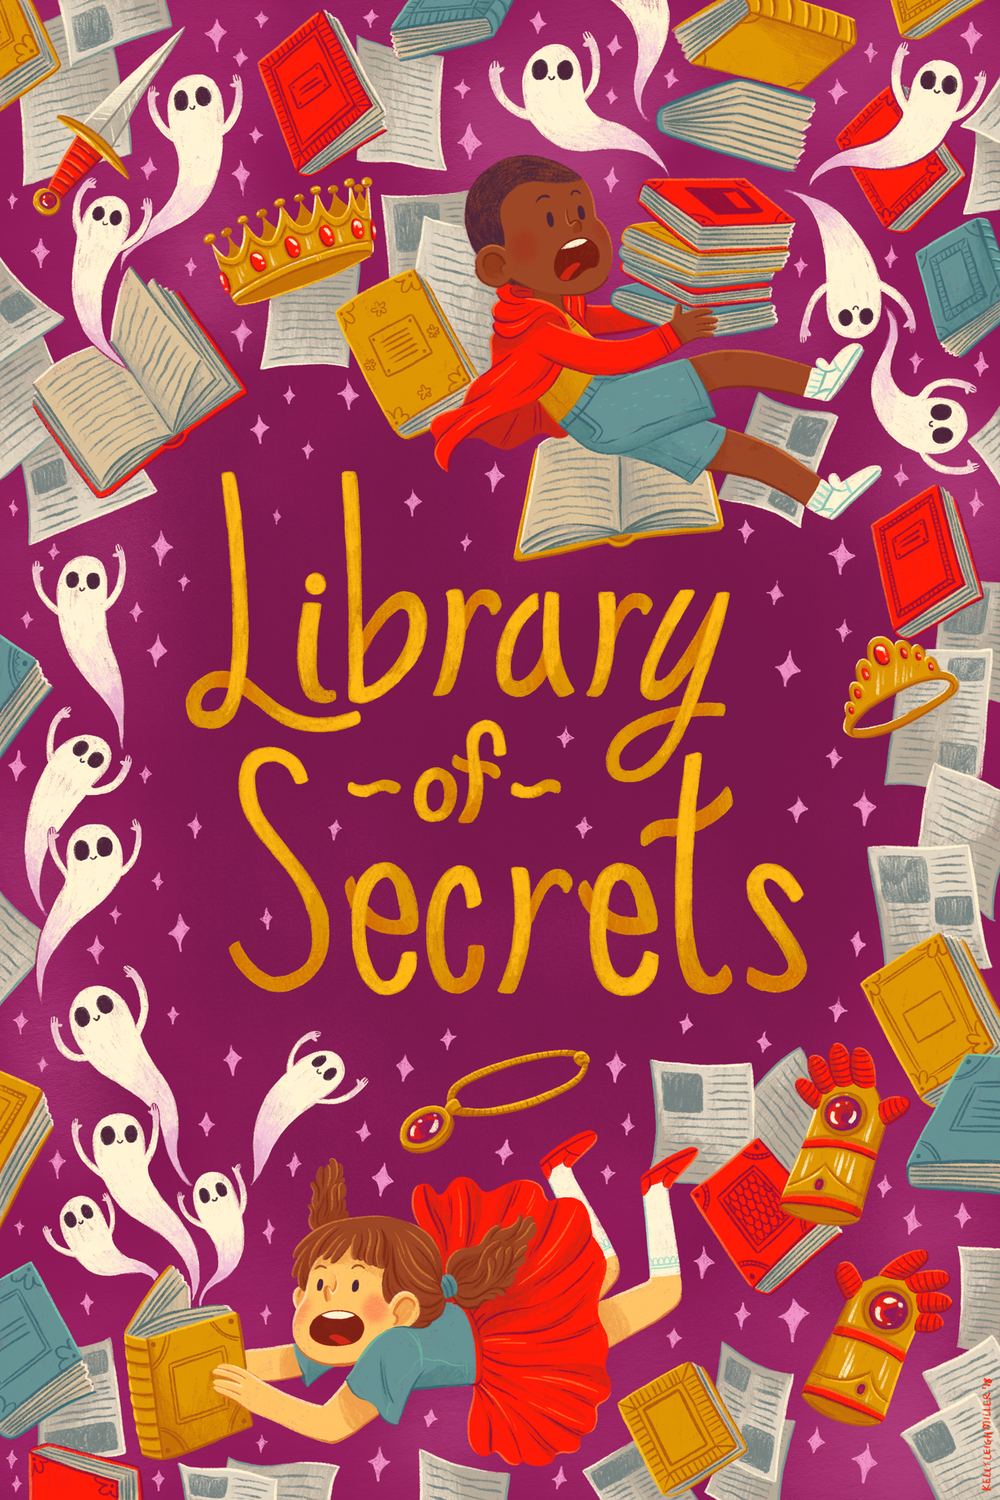 LibraryofSecrets.png